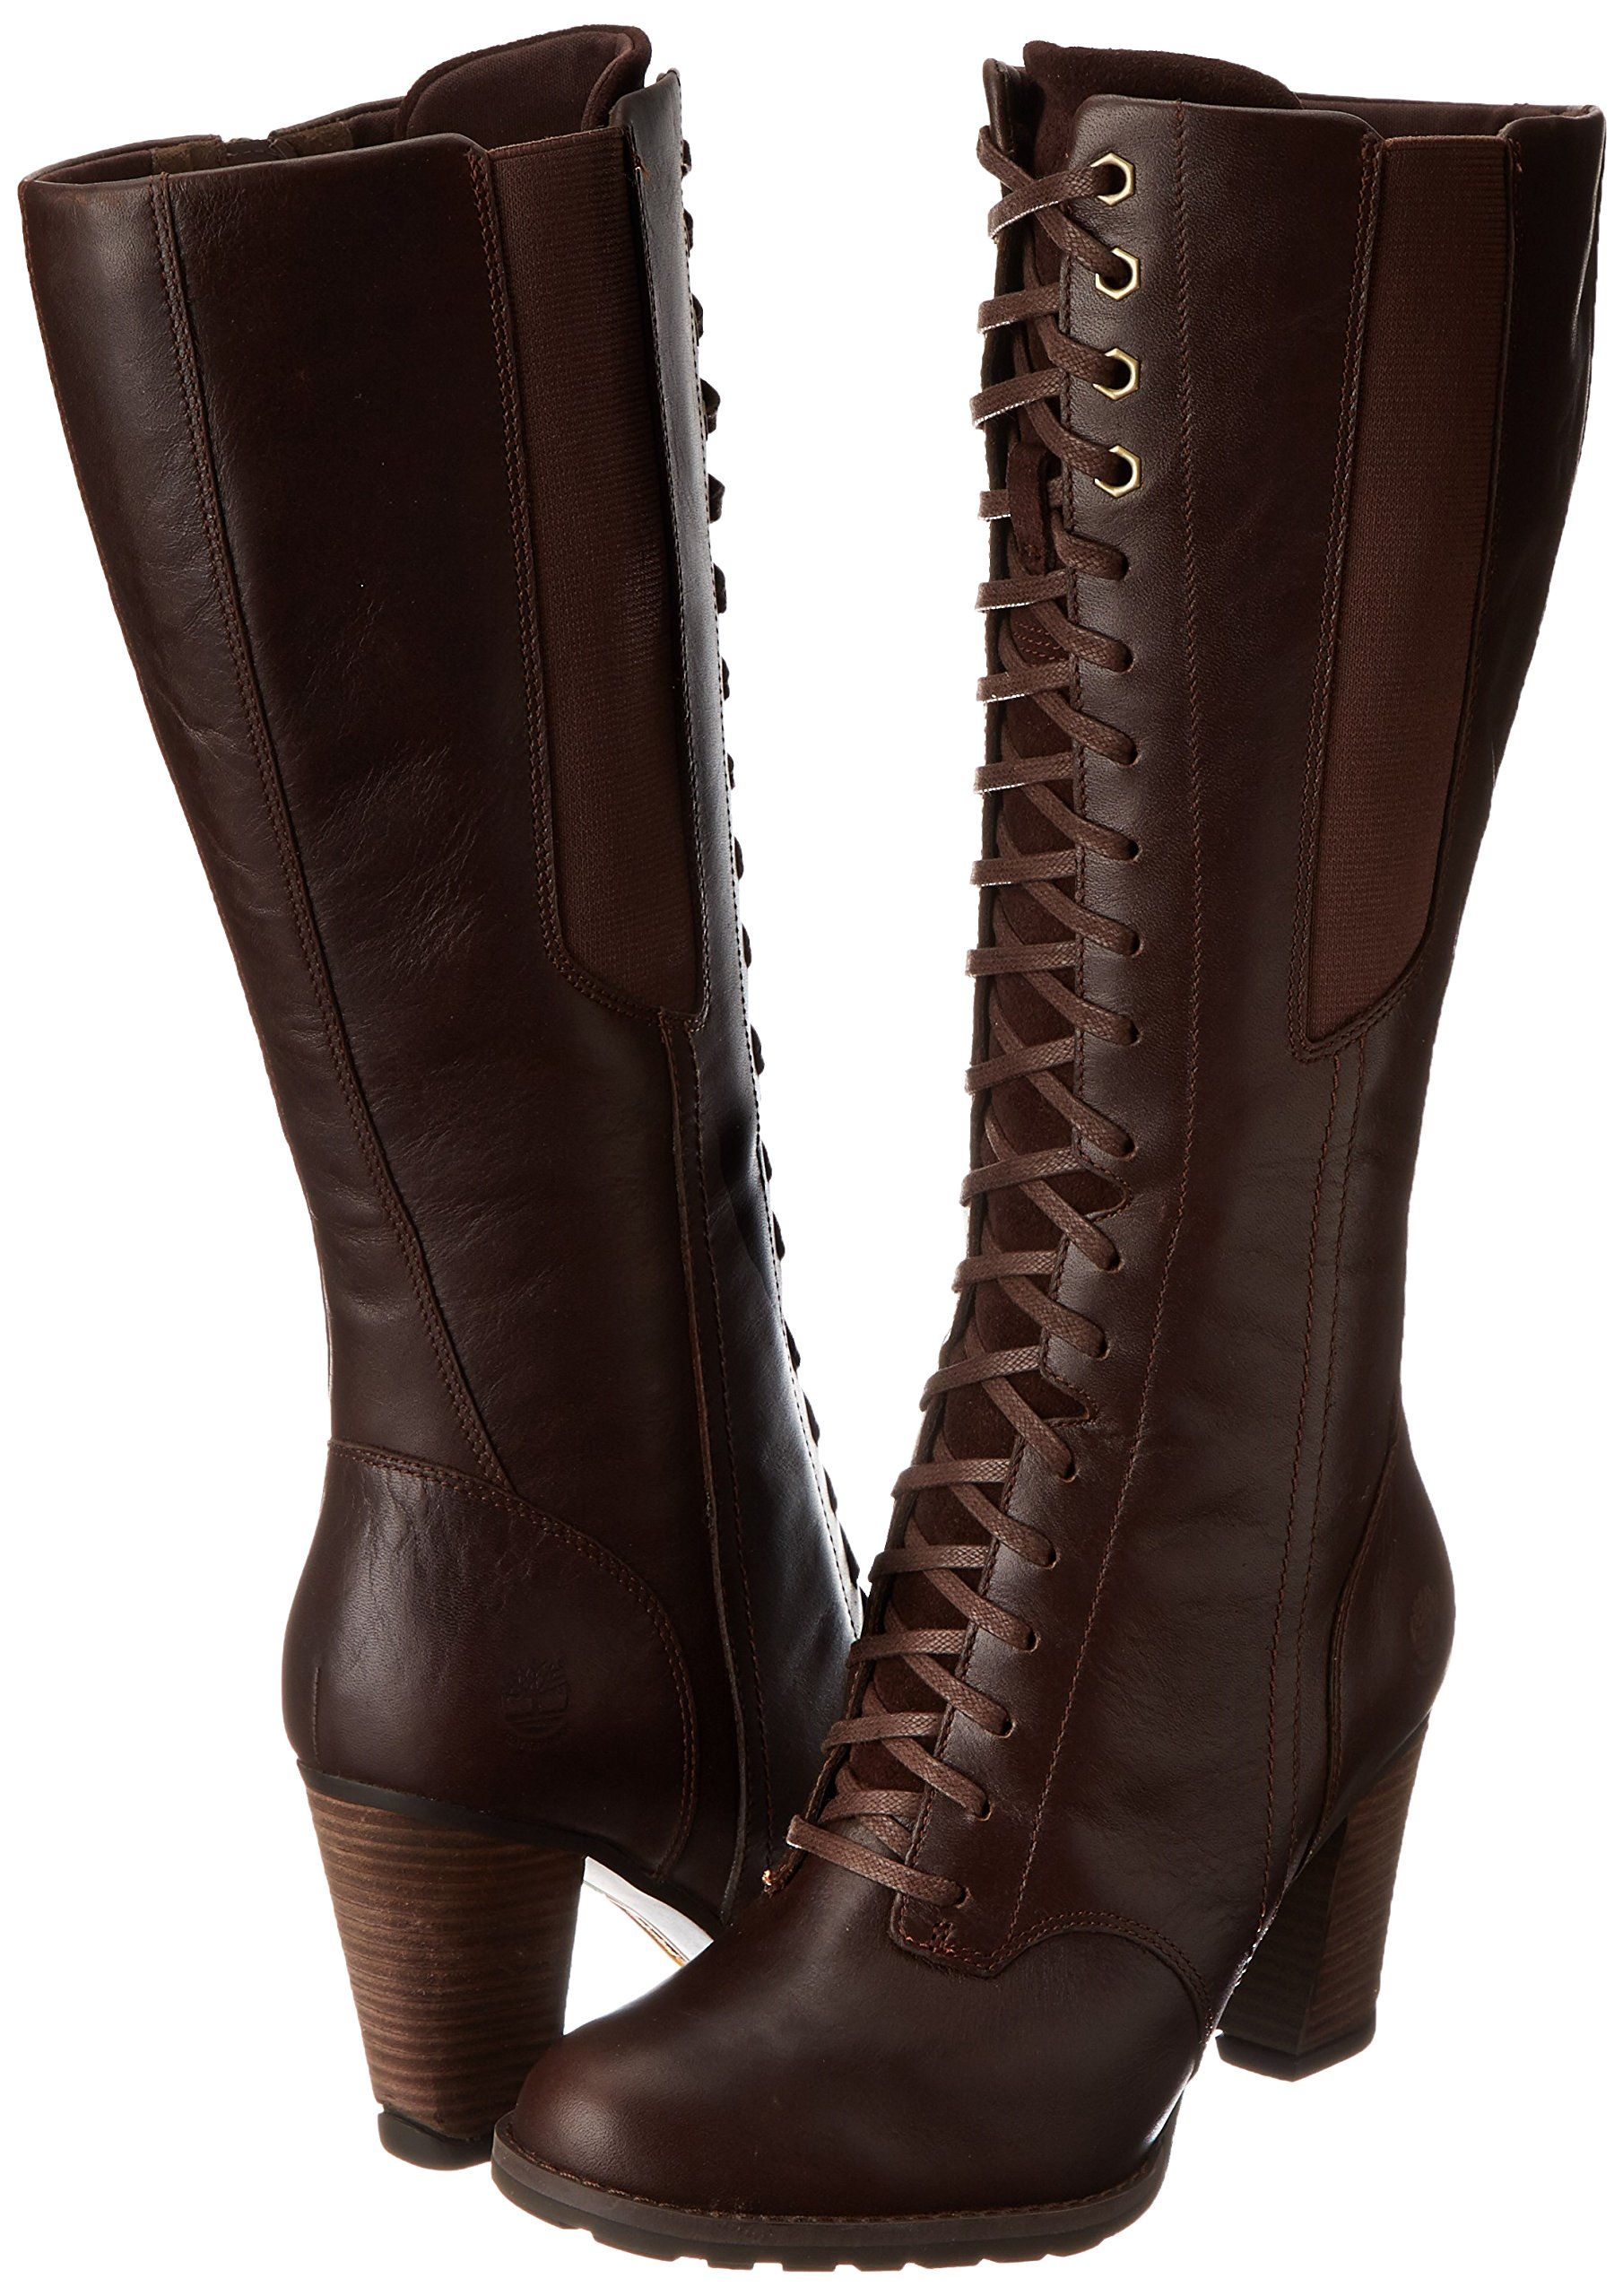 a5734dd5a85  180 Amazon.com  Timberland Women s EK Stratham Heights Tall WP Boot   Clothing